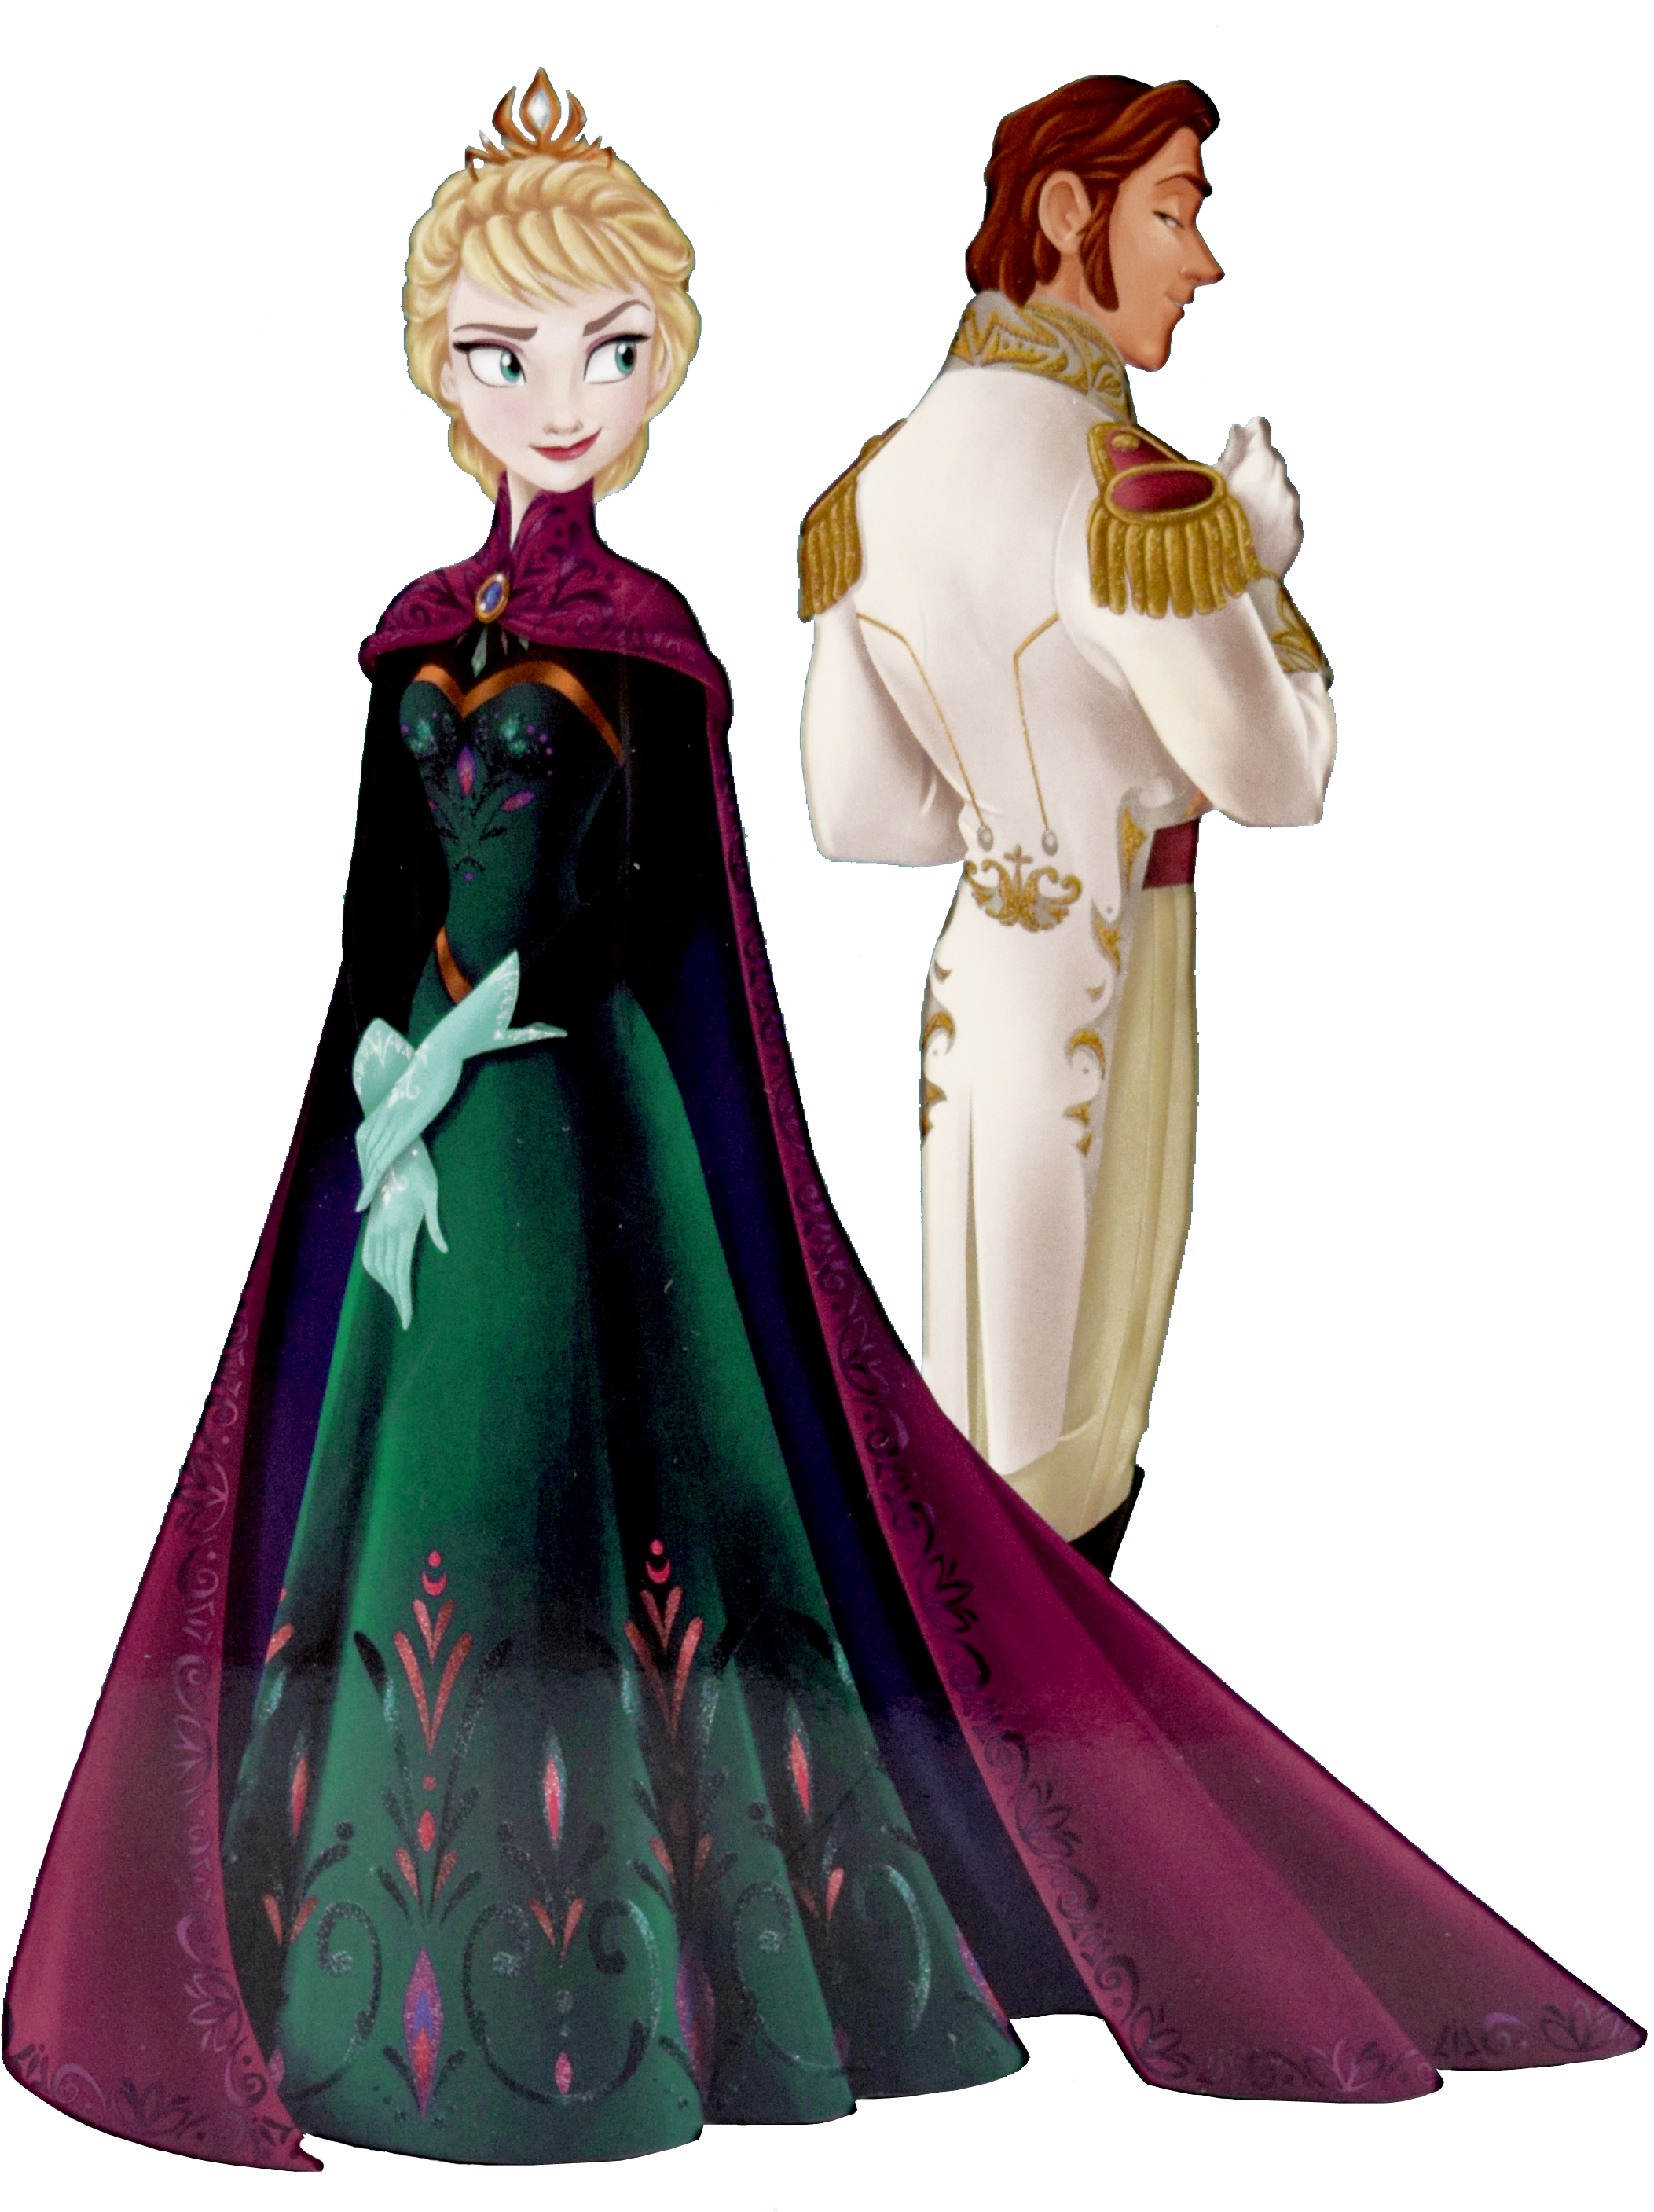 And elsa at the. Frozen clipart hans frozen